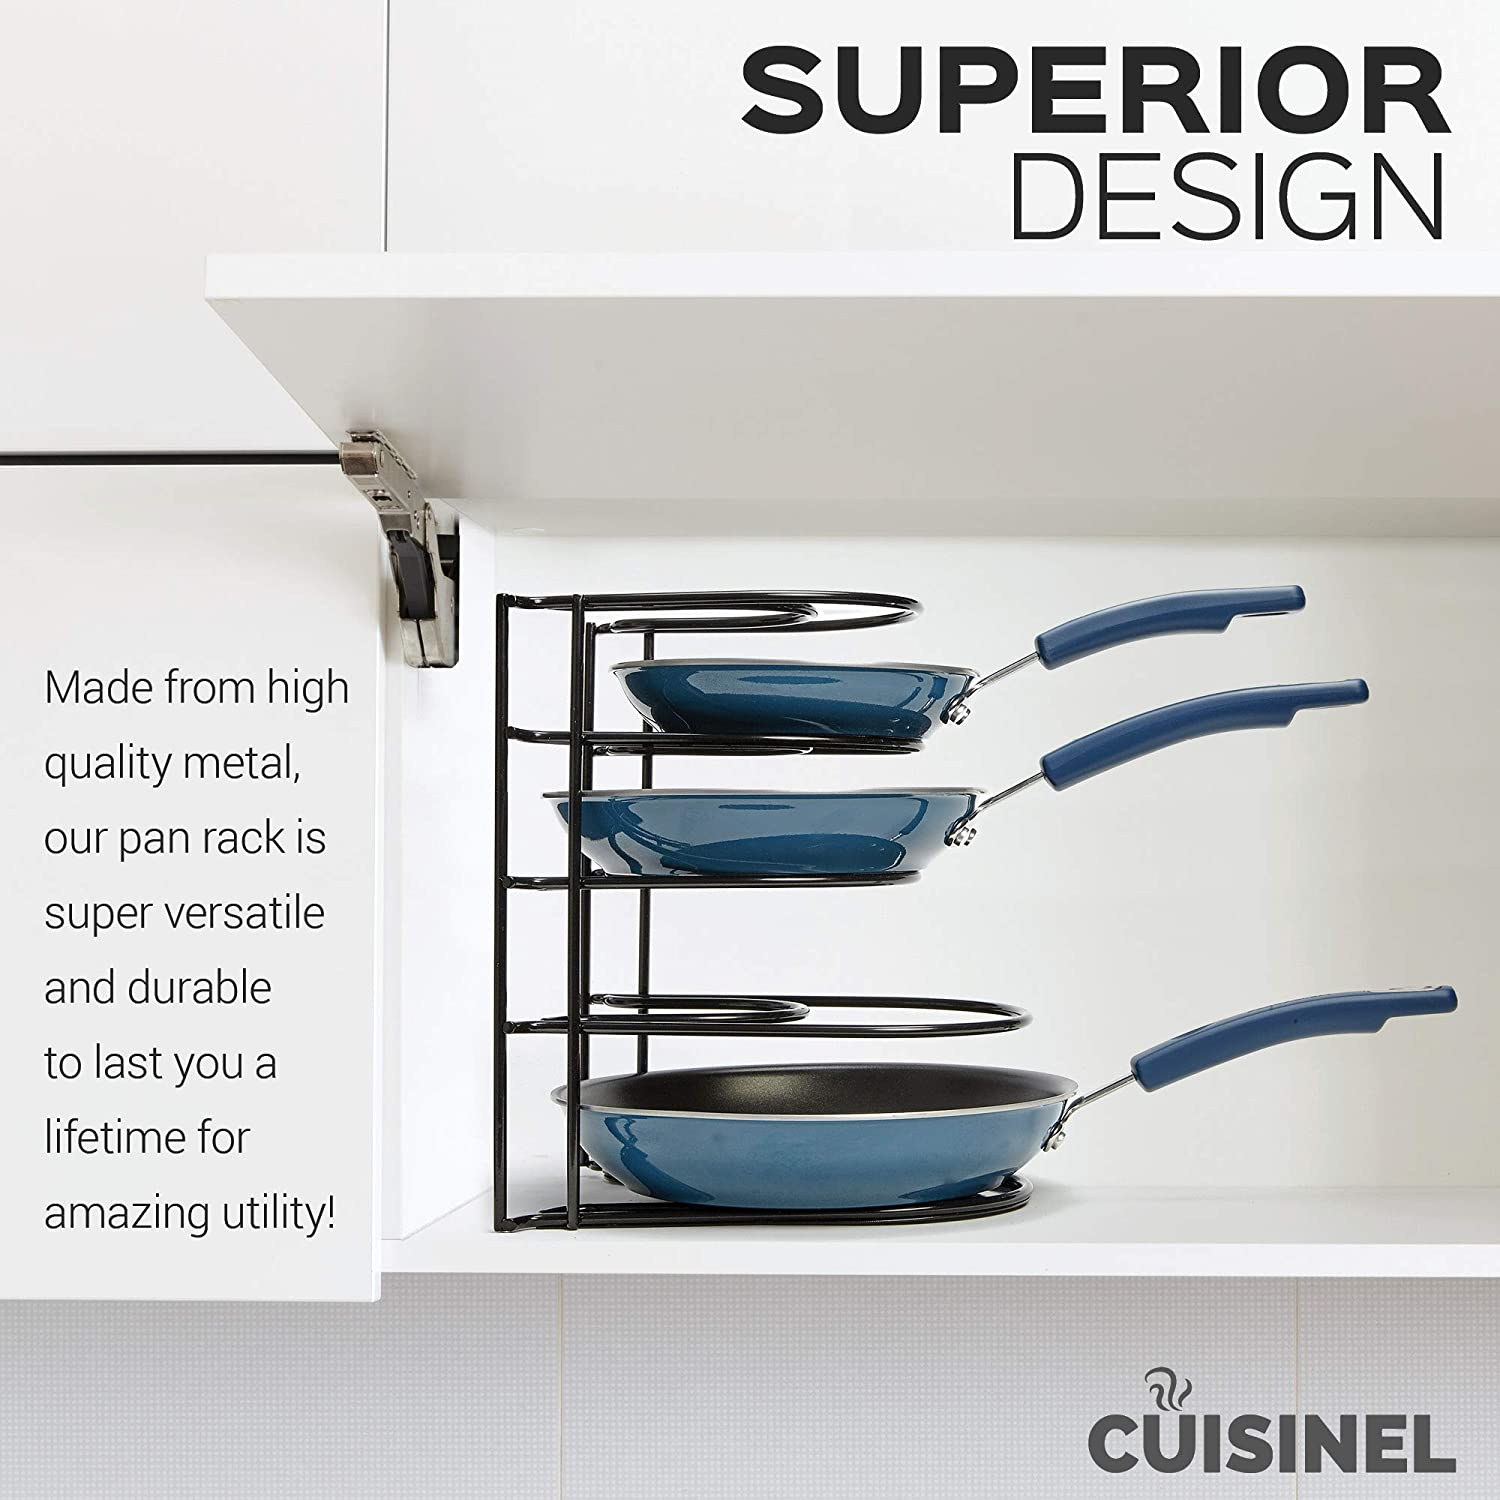 Space Saving Kitchen Storage By cuisinel C-PANRACK Griddles and Shallow Pots Heavy Duty Pan Organizer 5 Tier Rack Holds Cast Iron Skillets Durable Steel Construction